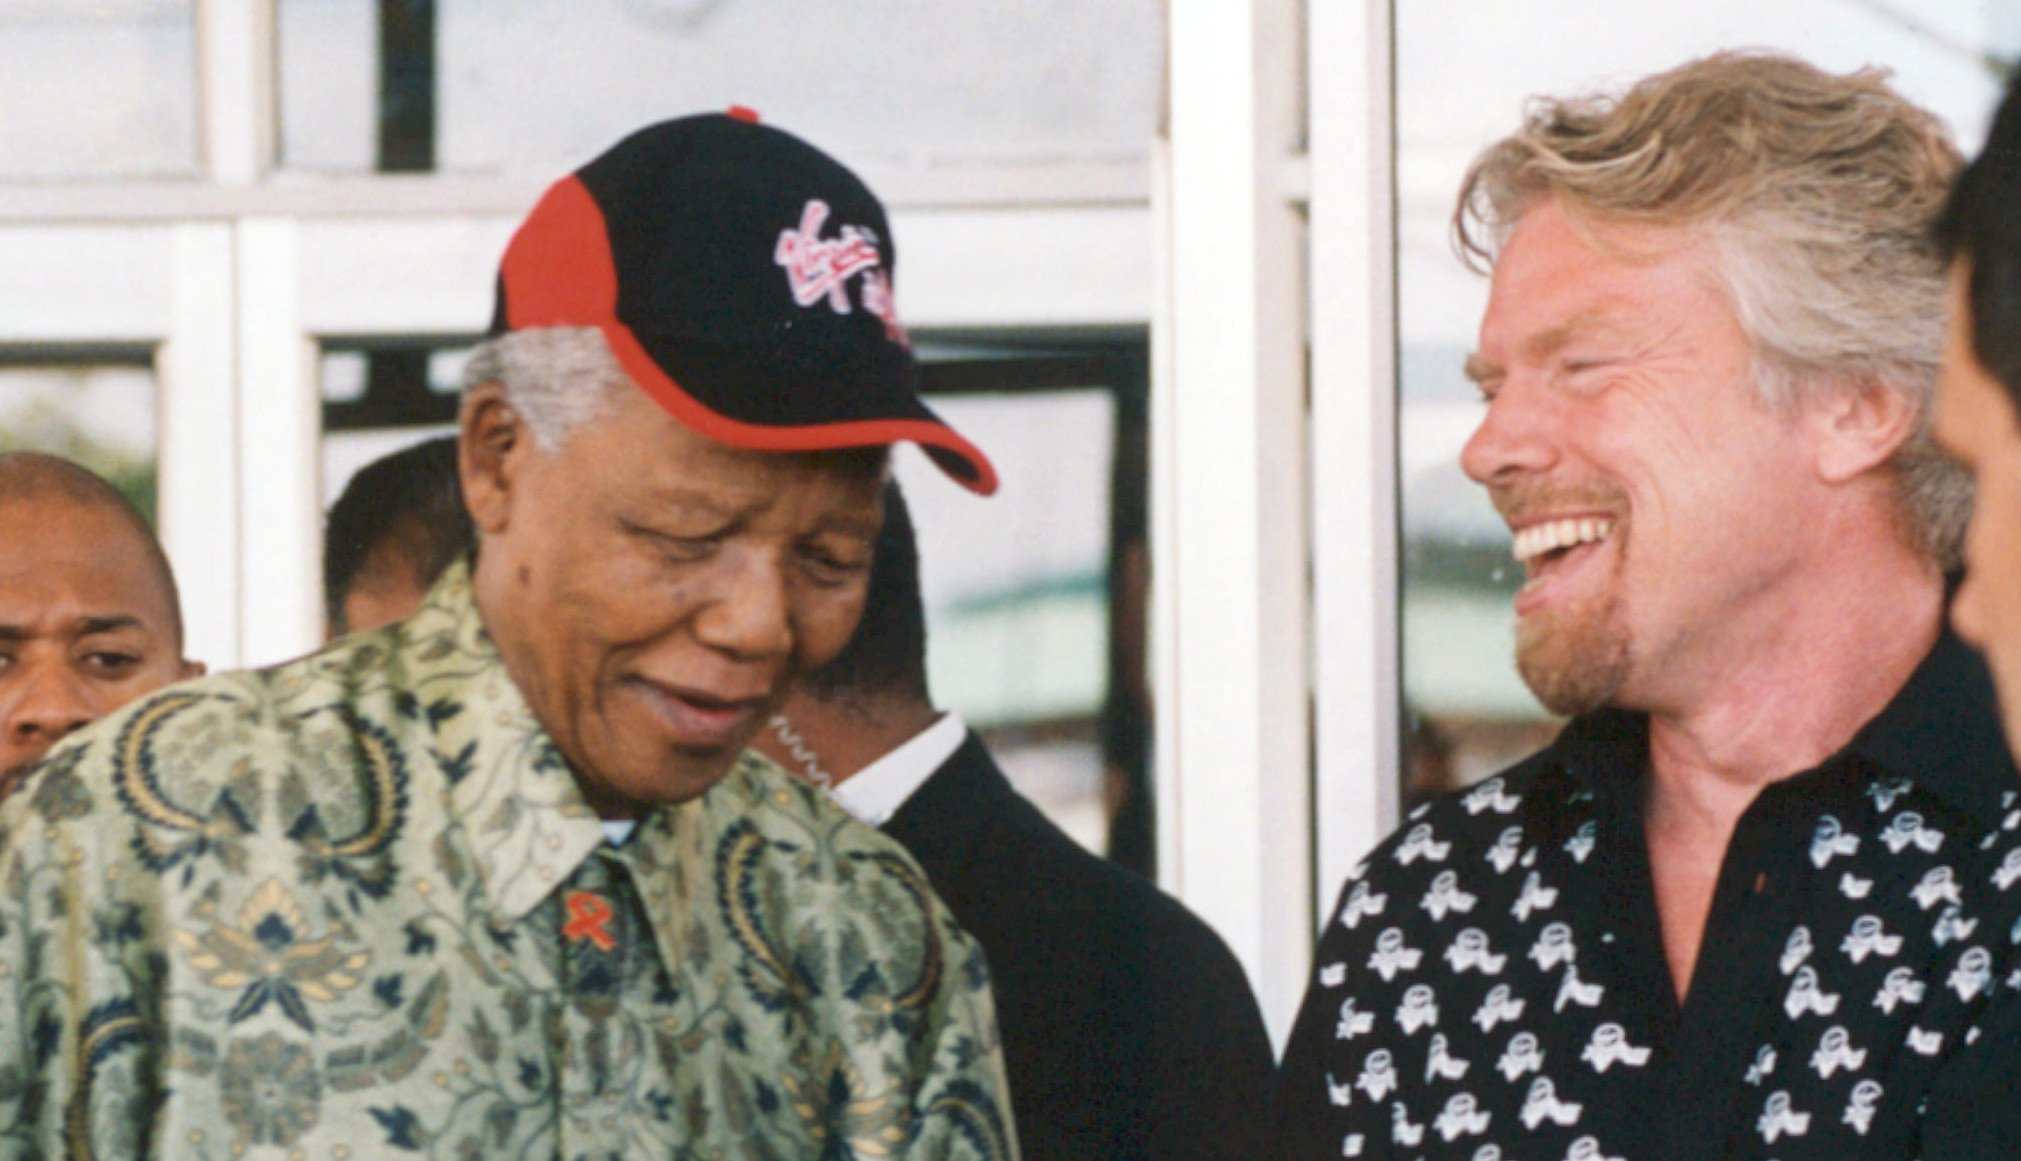 I know Madiba would be just as proud as we are of @theelders efforts over the past decade: https://t.co/8EHQZIMdiF https://t.co/tXg6VgZsao